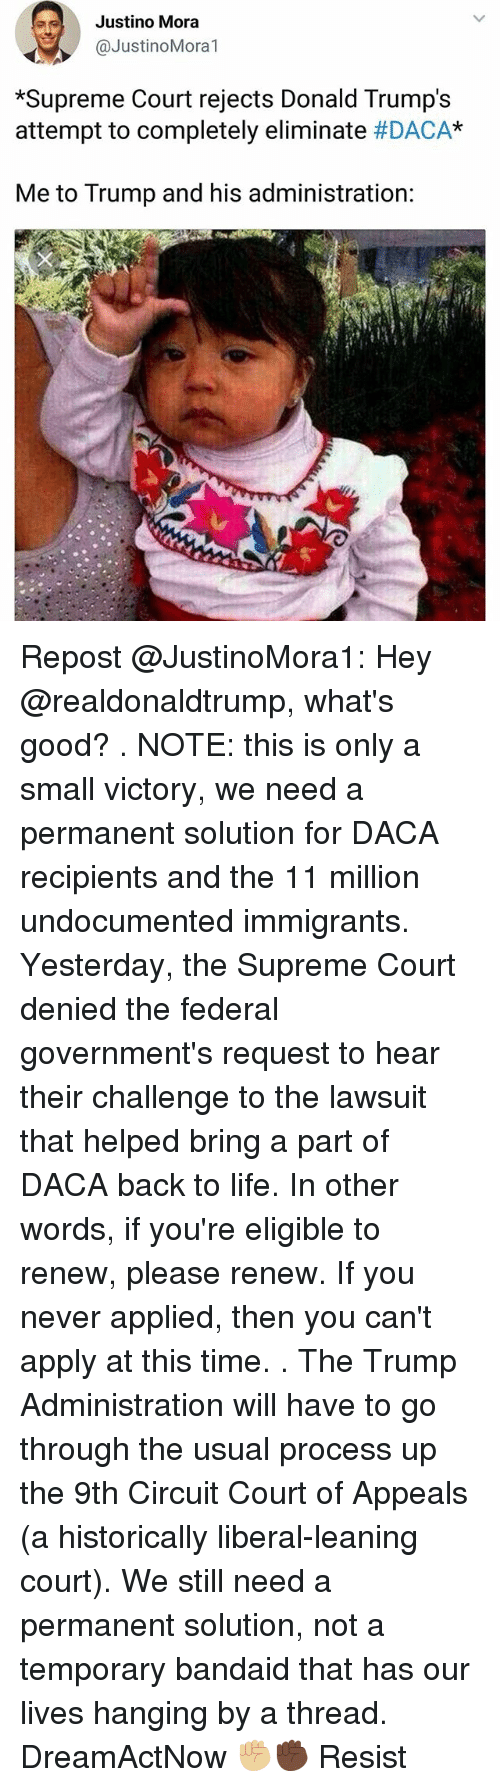 "Life, Memes, and Supreme: Justino Mora  @JustinoMora1  *Supreme Court rejects Donald Trump's  attempt to completely eliminate #DACA""  Me to Trump and his administration: Repost @JustinoMora1: Hey @realdonaldtrump, what's good? . NOTE: this is only a small victory, we need a permanent solution for DACA recipients and the 11 million undocumented immigrants. Yesterday, the Supreme Court denied the federal government's request to hear their challenge to the lawsuit that helped bring a part of DACA back to life. In other words, if you're eligible to renew, please renew. If you never applied, then you can't apply at this time. . The Trump Administration will have to go through the usual process up the 9th Circuit Court of Appeals (a historically liberal-leaning court). We still need a permanent solution, not a temporary bandaid that has our lives hanging by a thread. DreamActNow ✊🏼✊🏿 Resist"